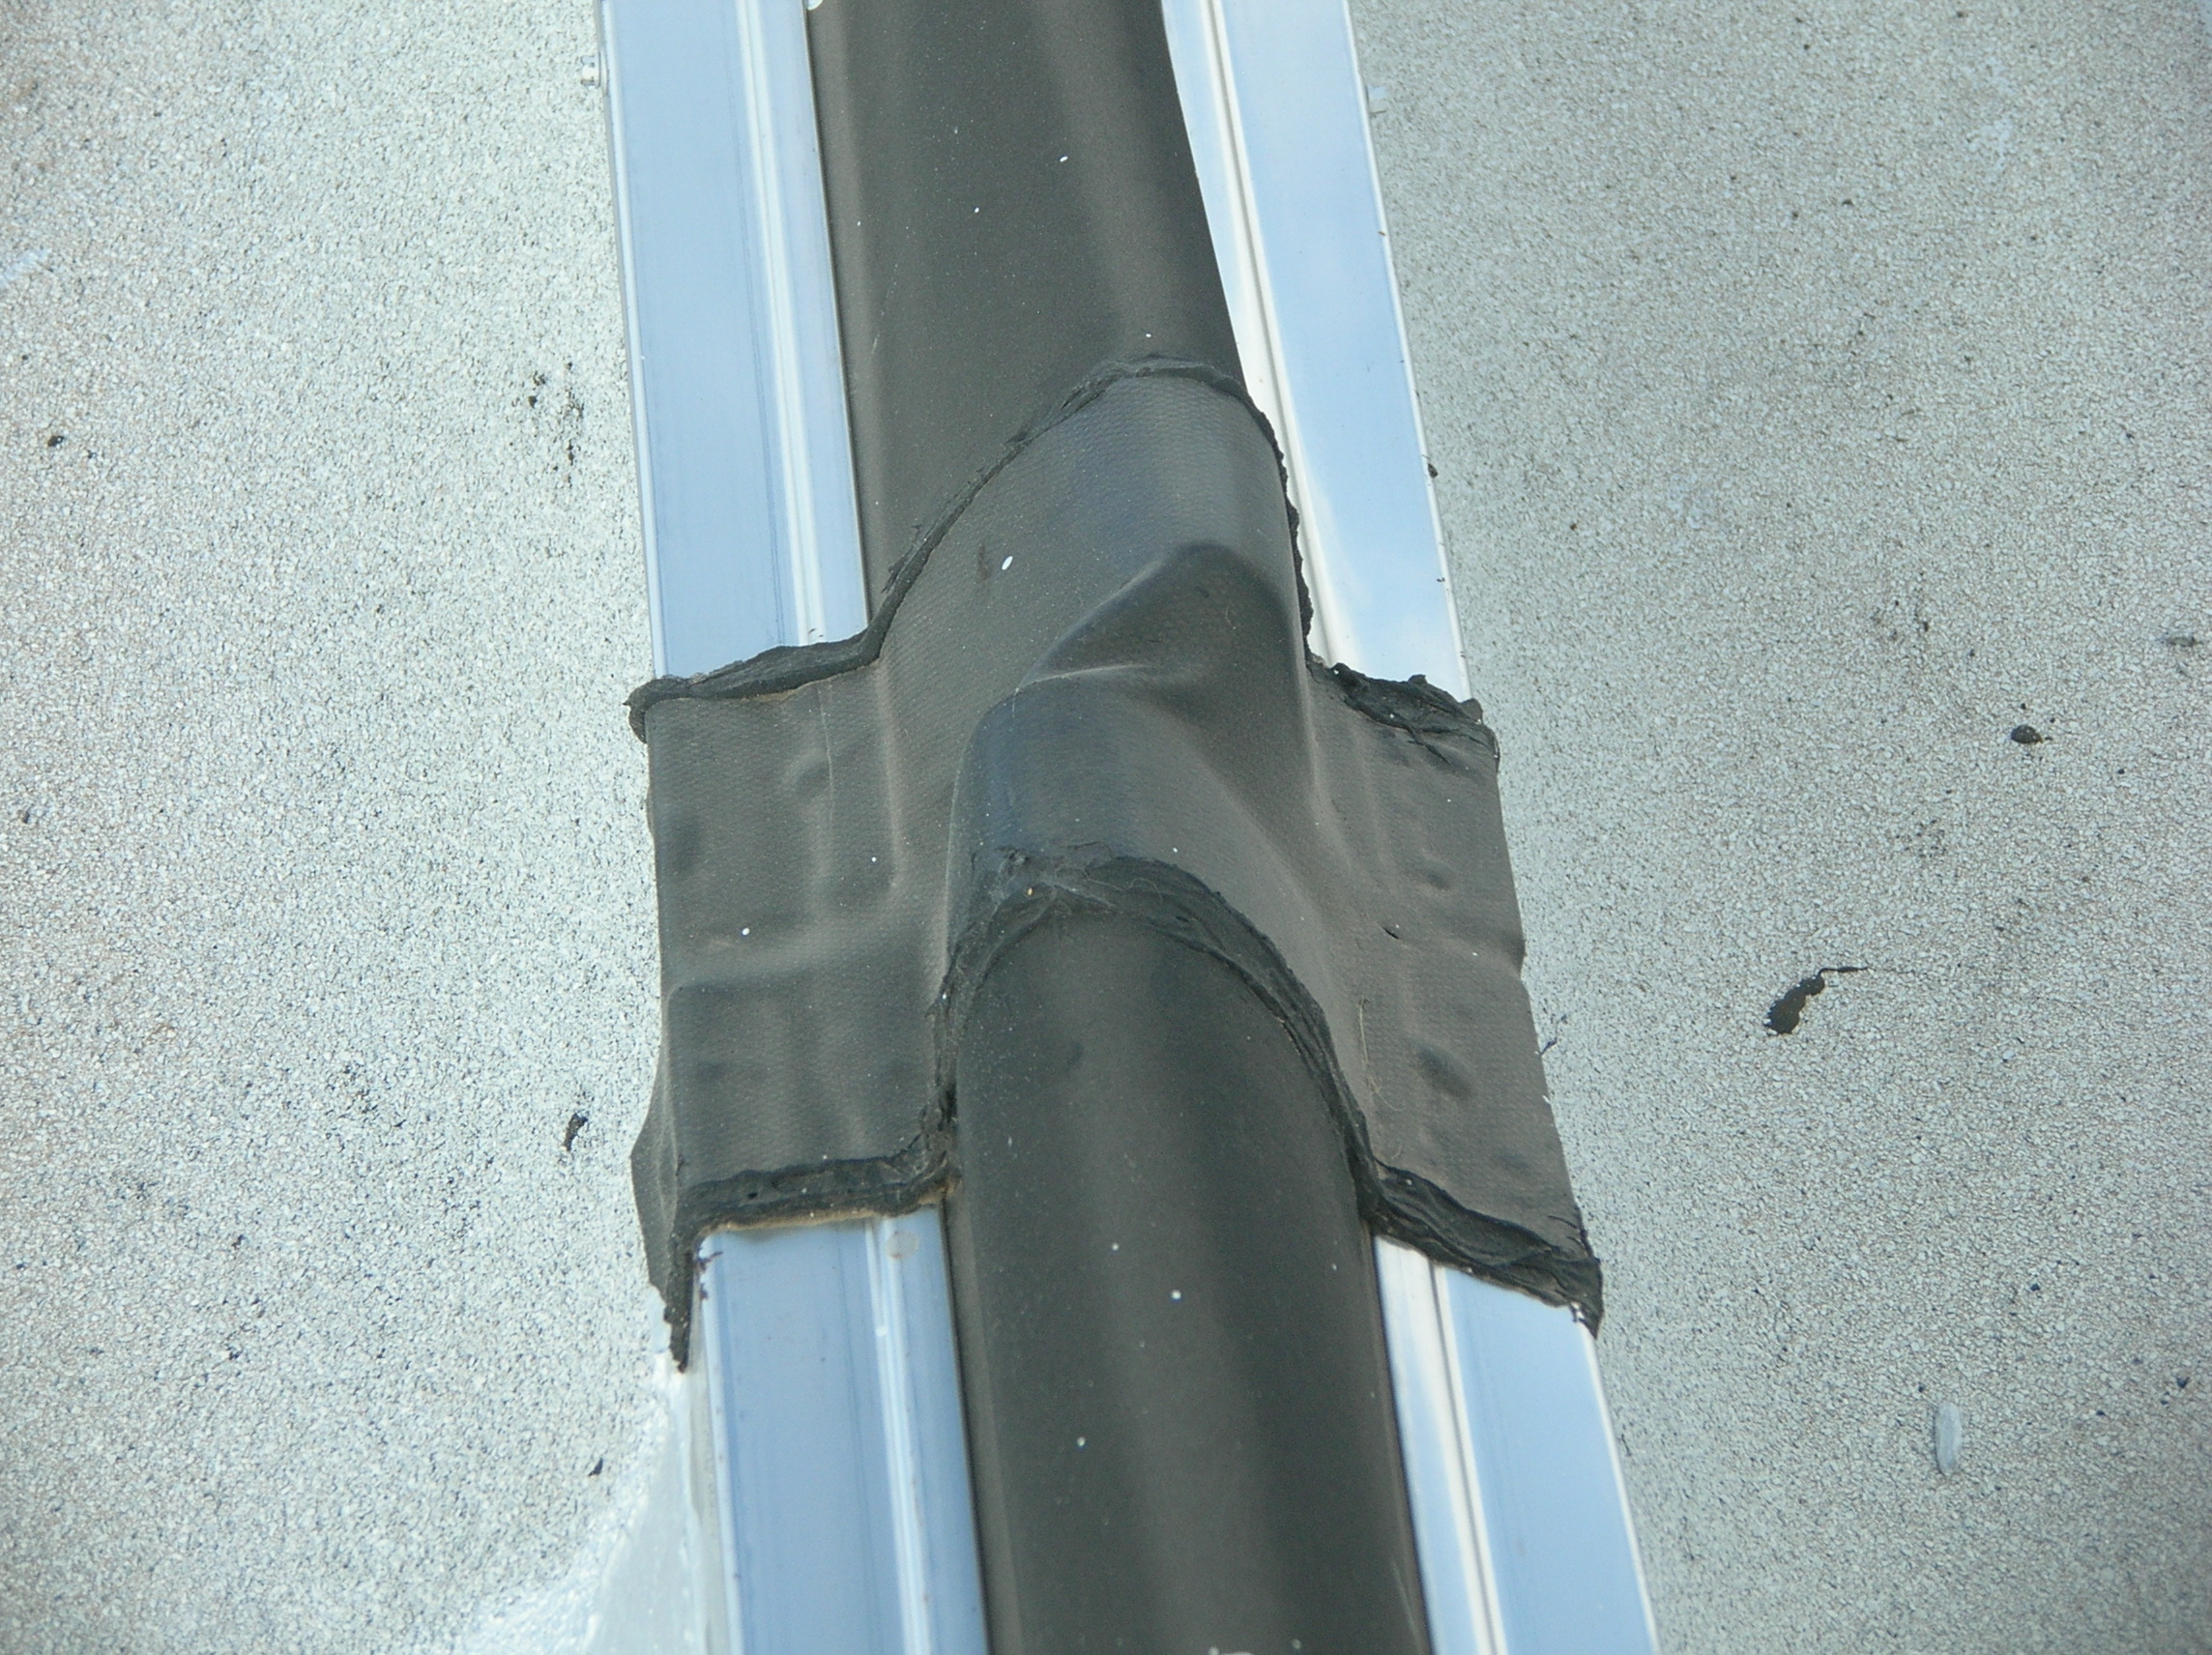 Top view of a curbed expansion joint, showing the joint between sections of the expansion joint cover.